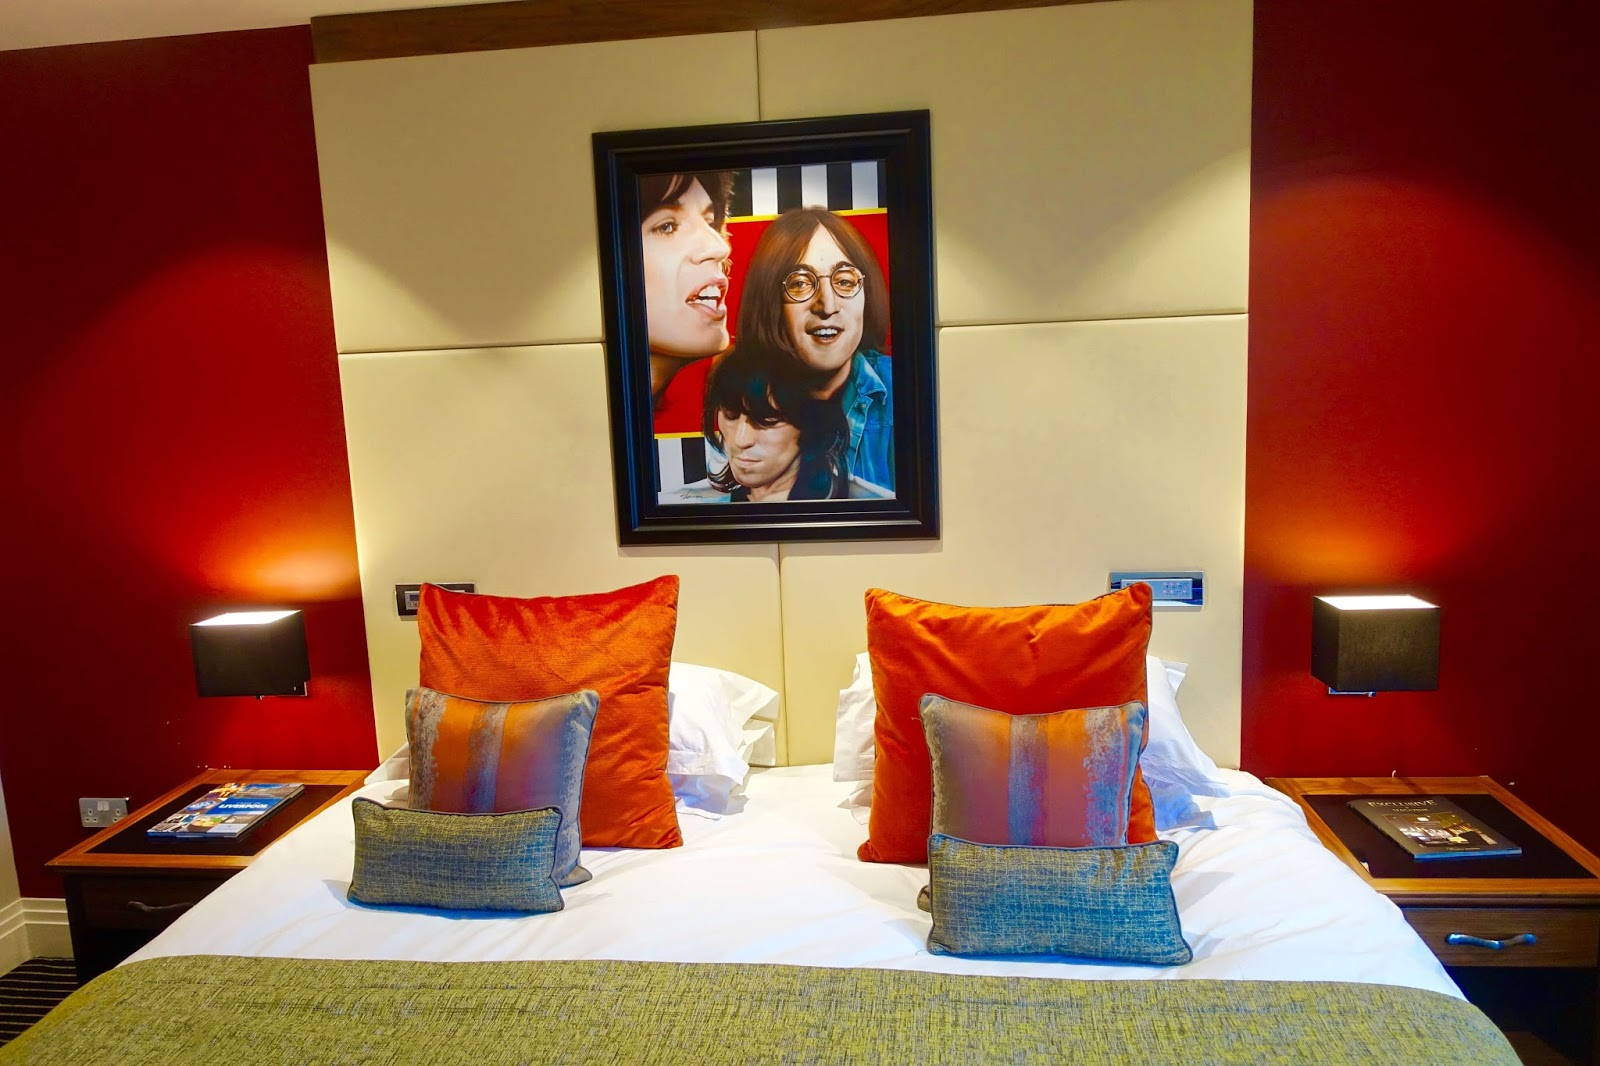 HDN Hotel Beatles themed tribute hotel